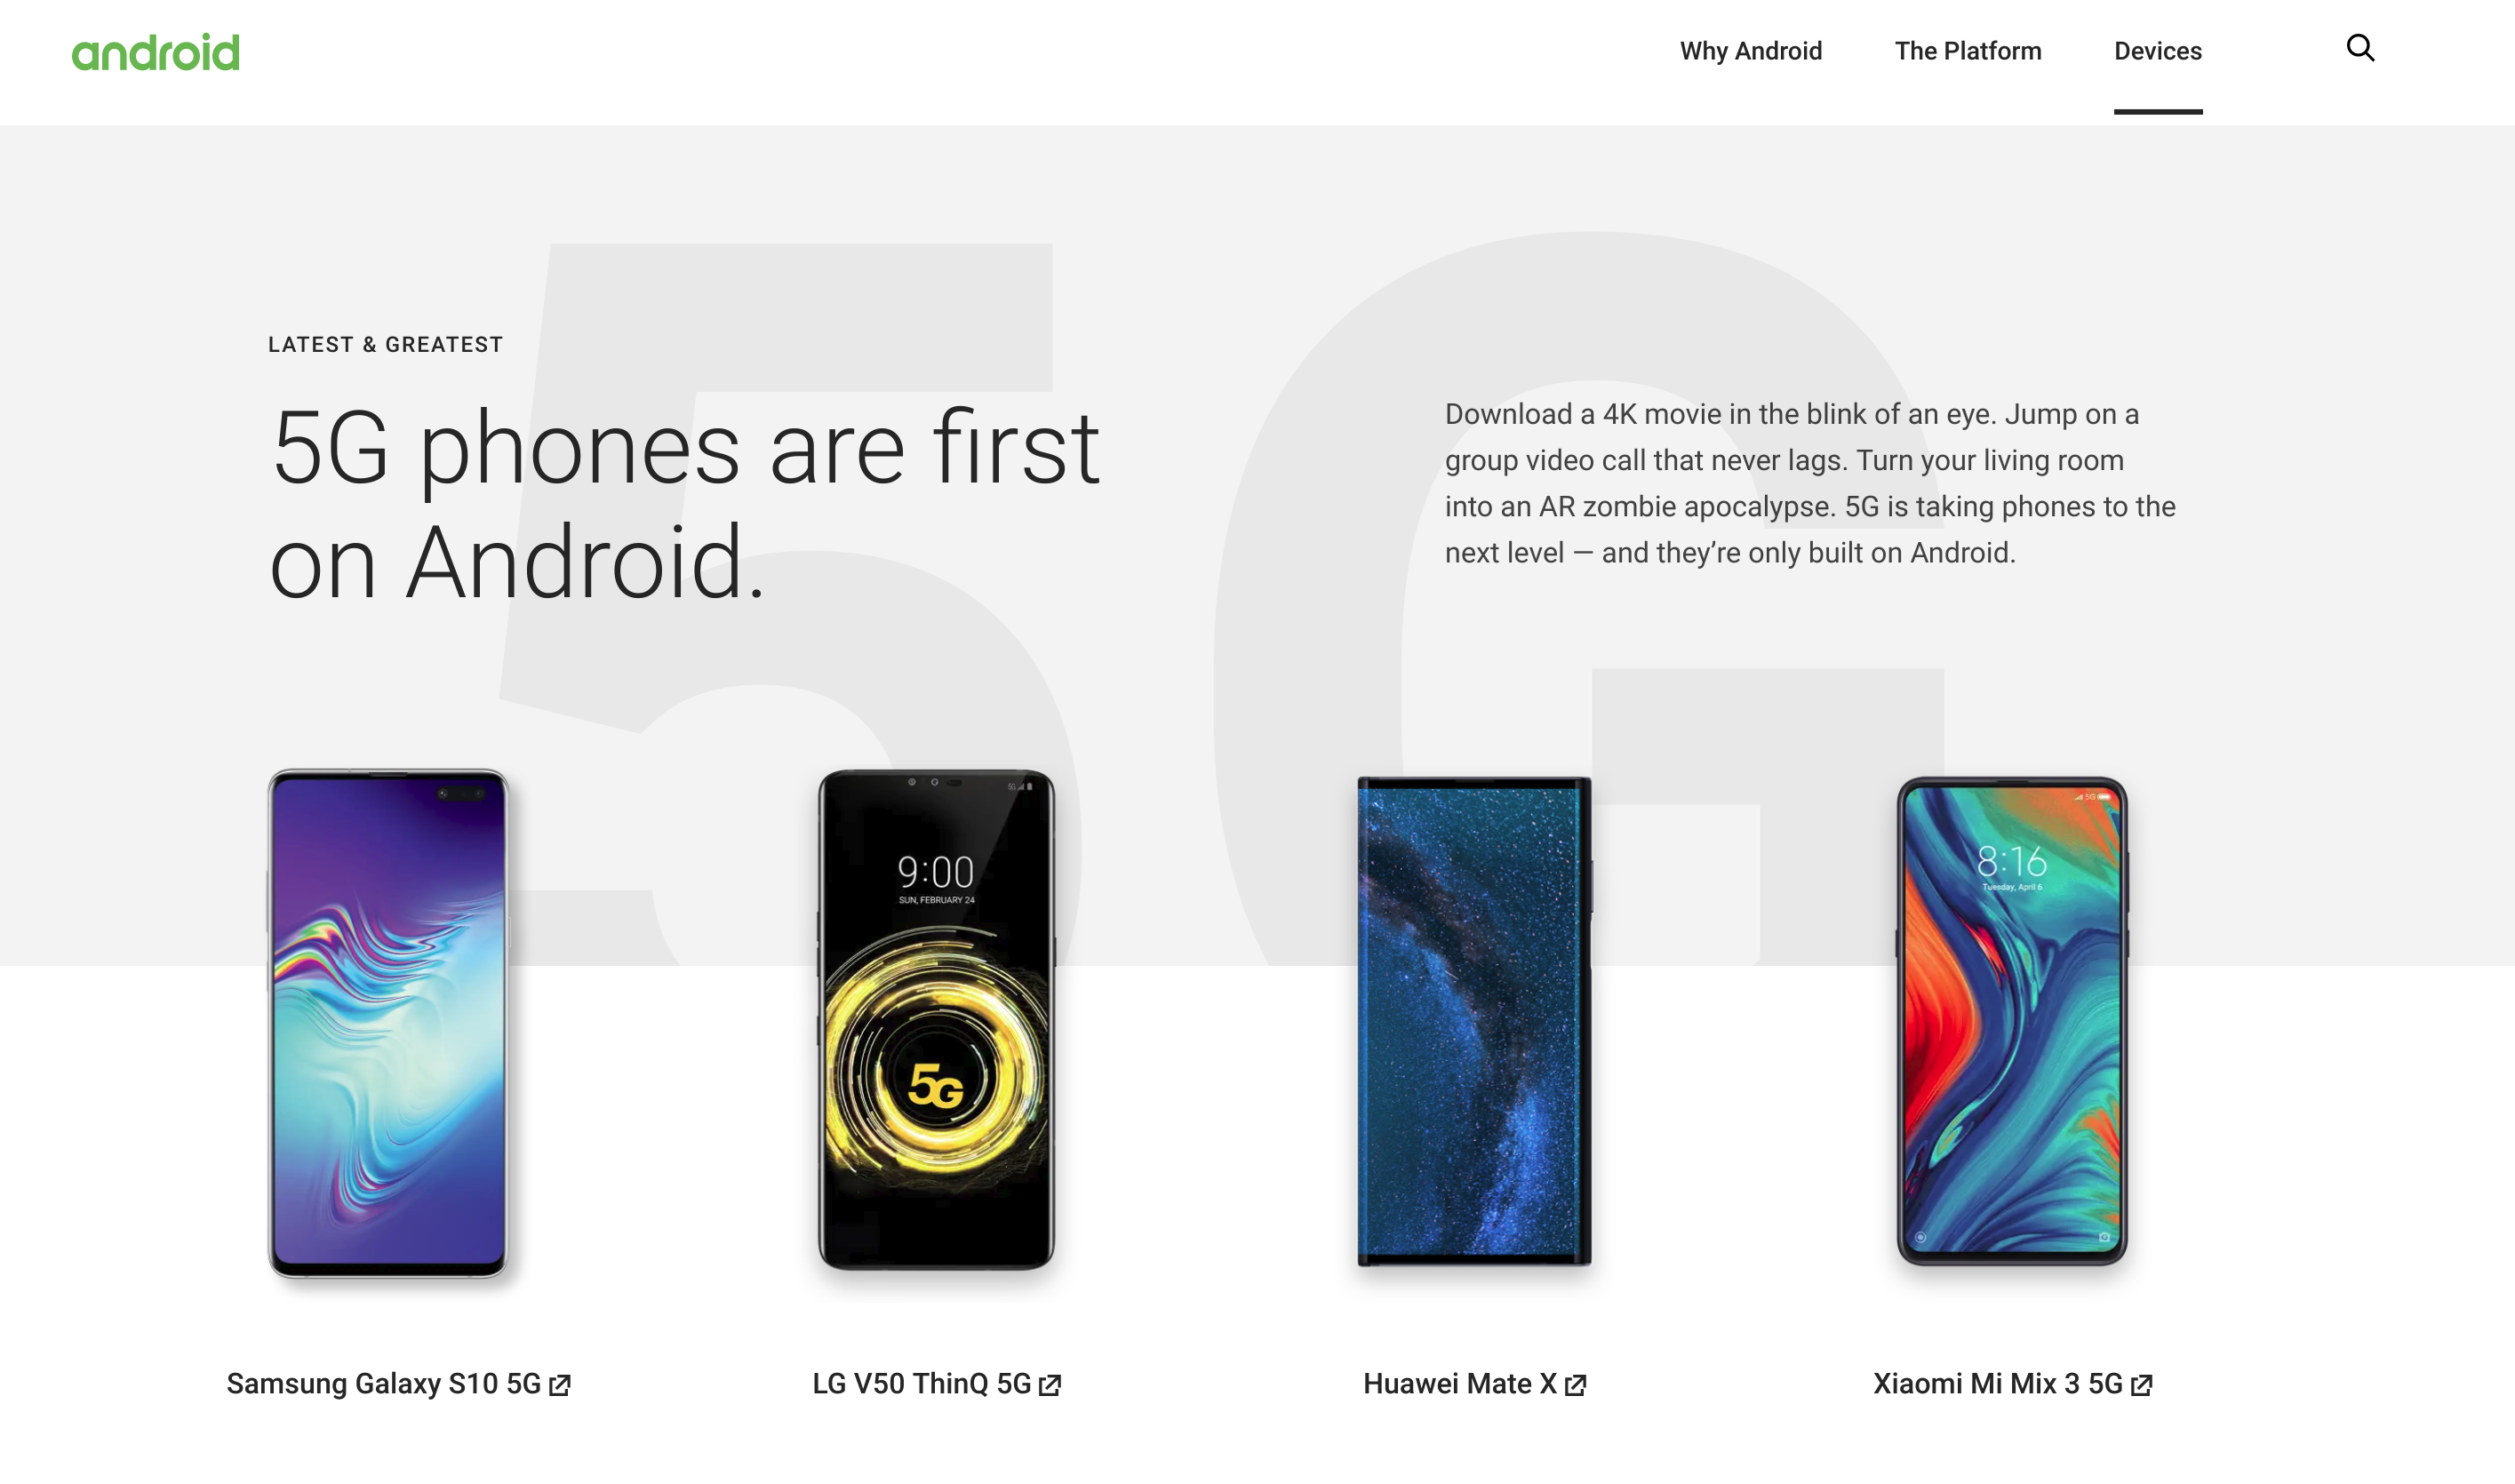 The Huawei Mate X was originally listed on the homepage.